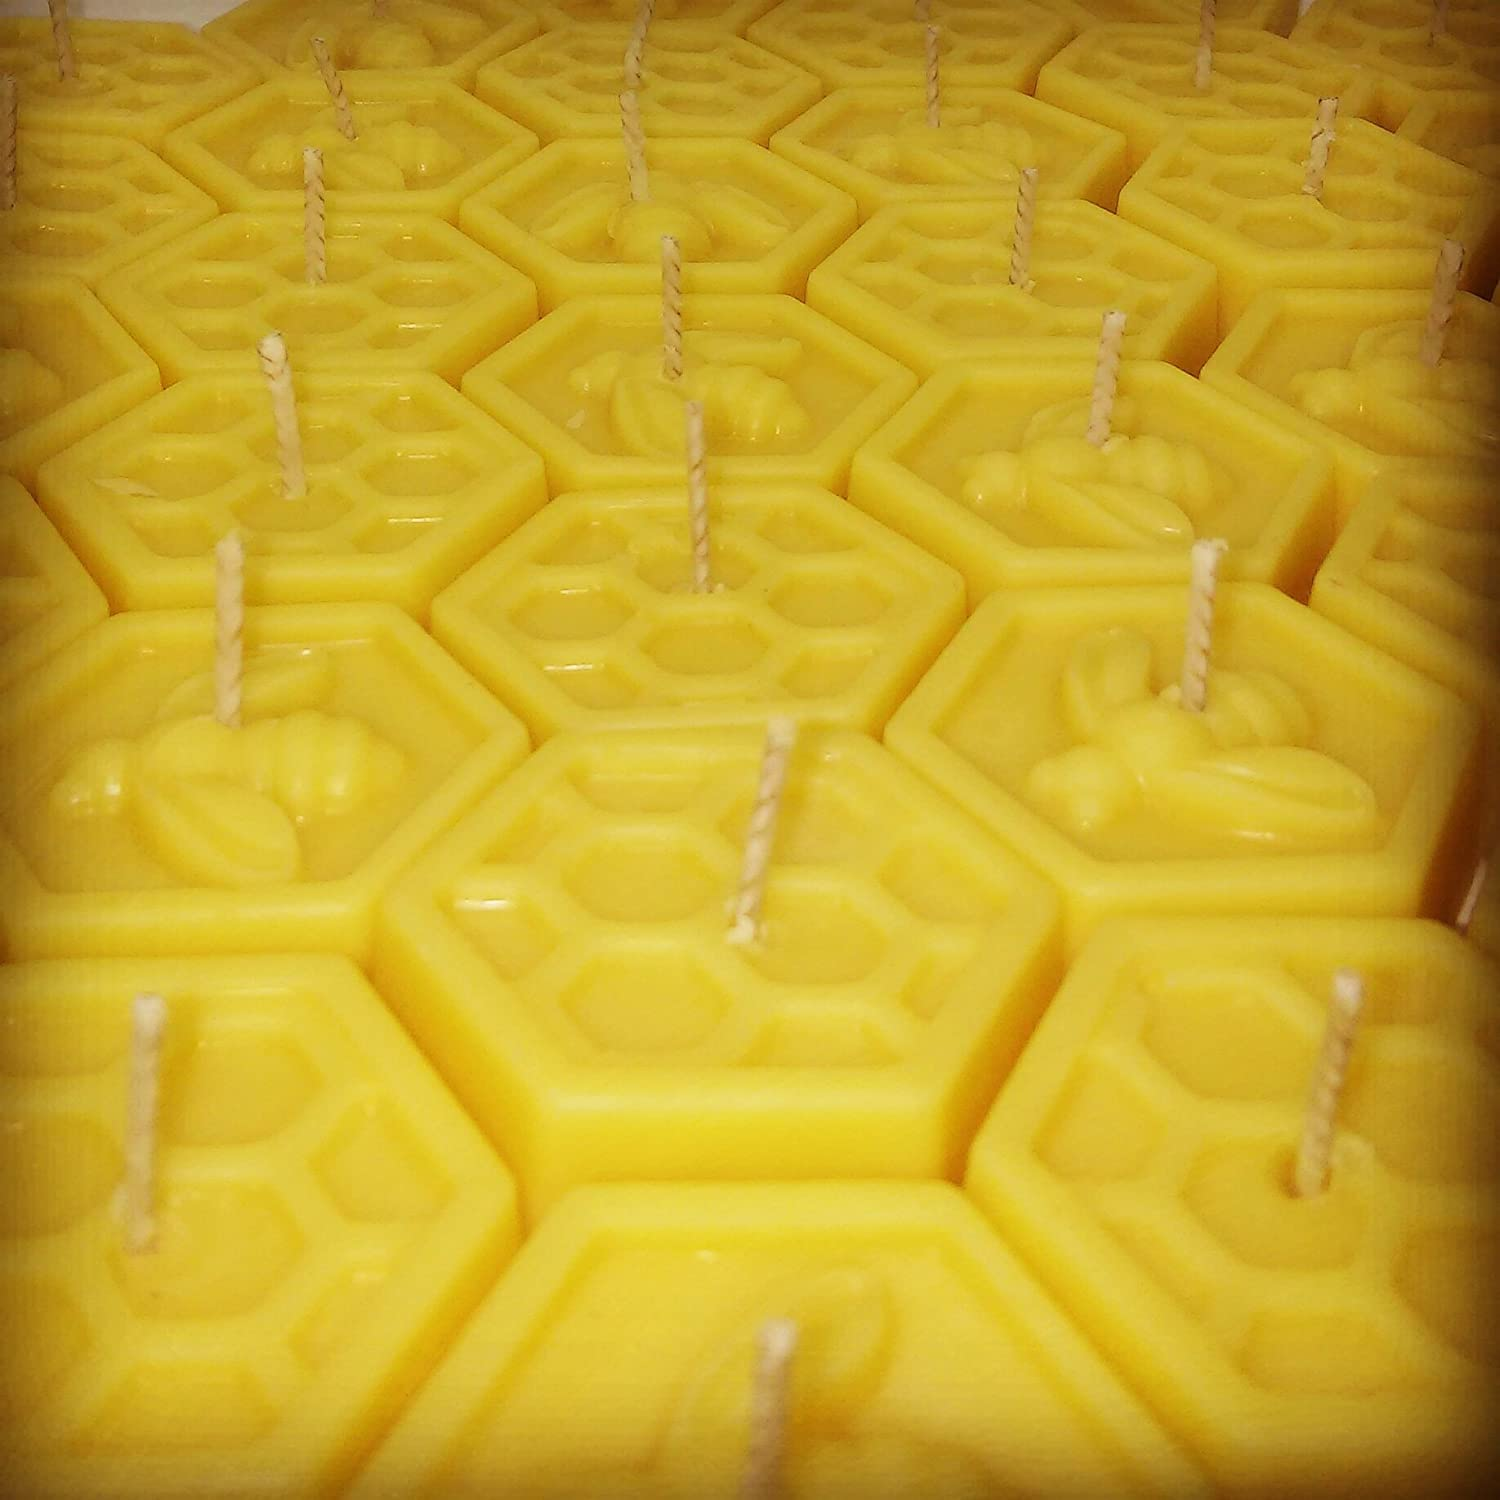 100% Pure Natural Organic Handmade Beeswax hexagon shaped Tea Light Candles Pack of 20 Deal